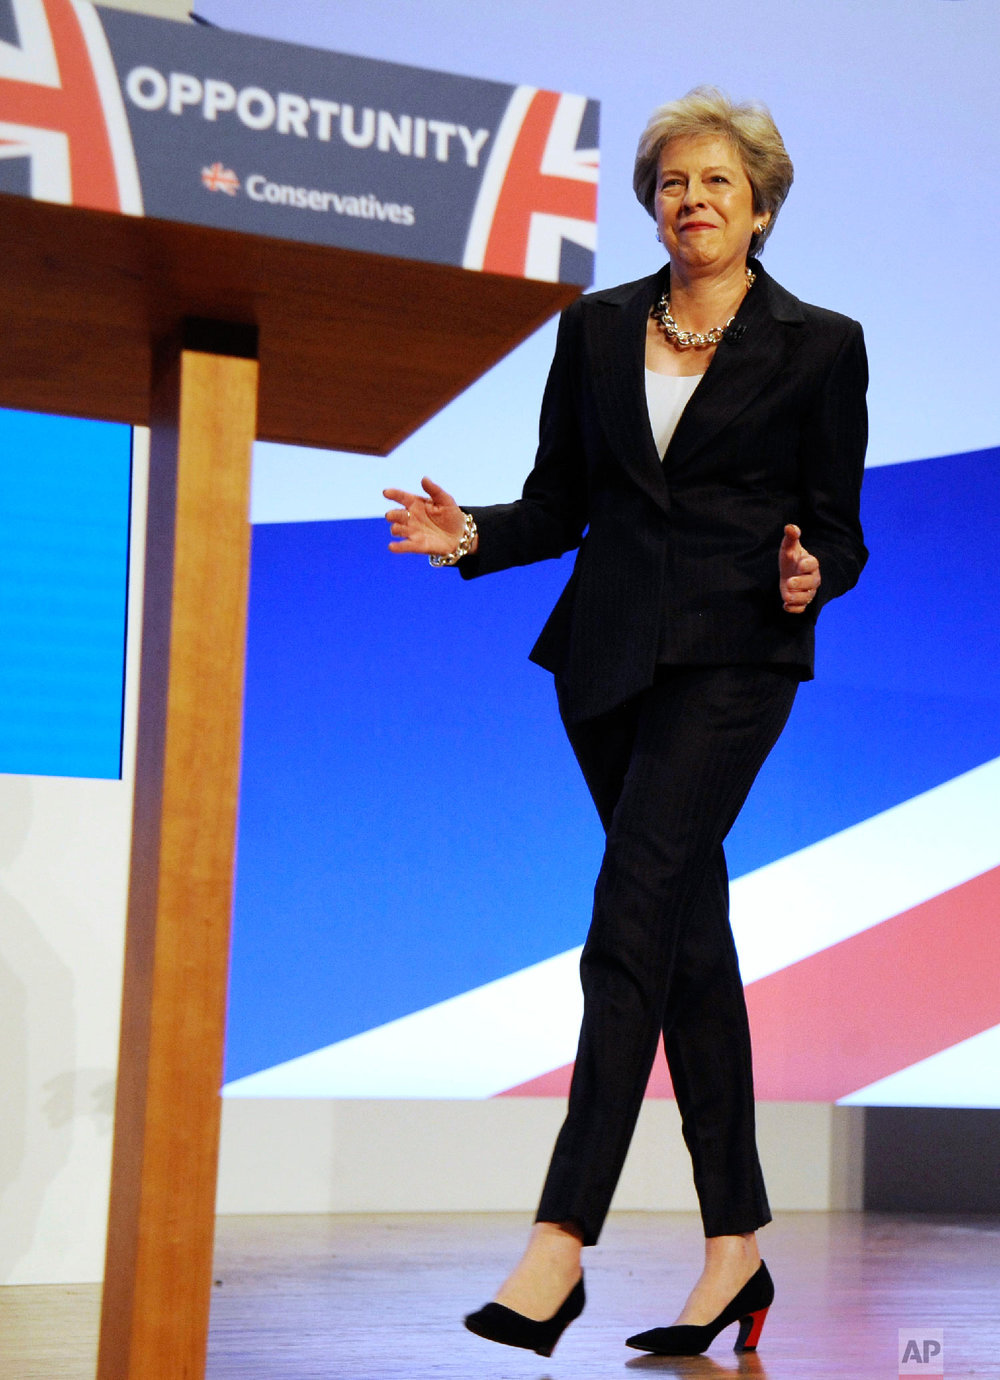 Conservative Party Leader and Prime Minister Theresa May dances as she arrives on stage to address delegates during a speech at the Conservative Party Conference at the ICC, in Birmingham, England on Oct. 3 , 2018. (AP Photo/Rui Vieira)